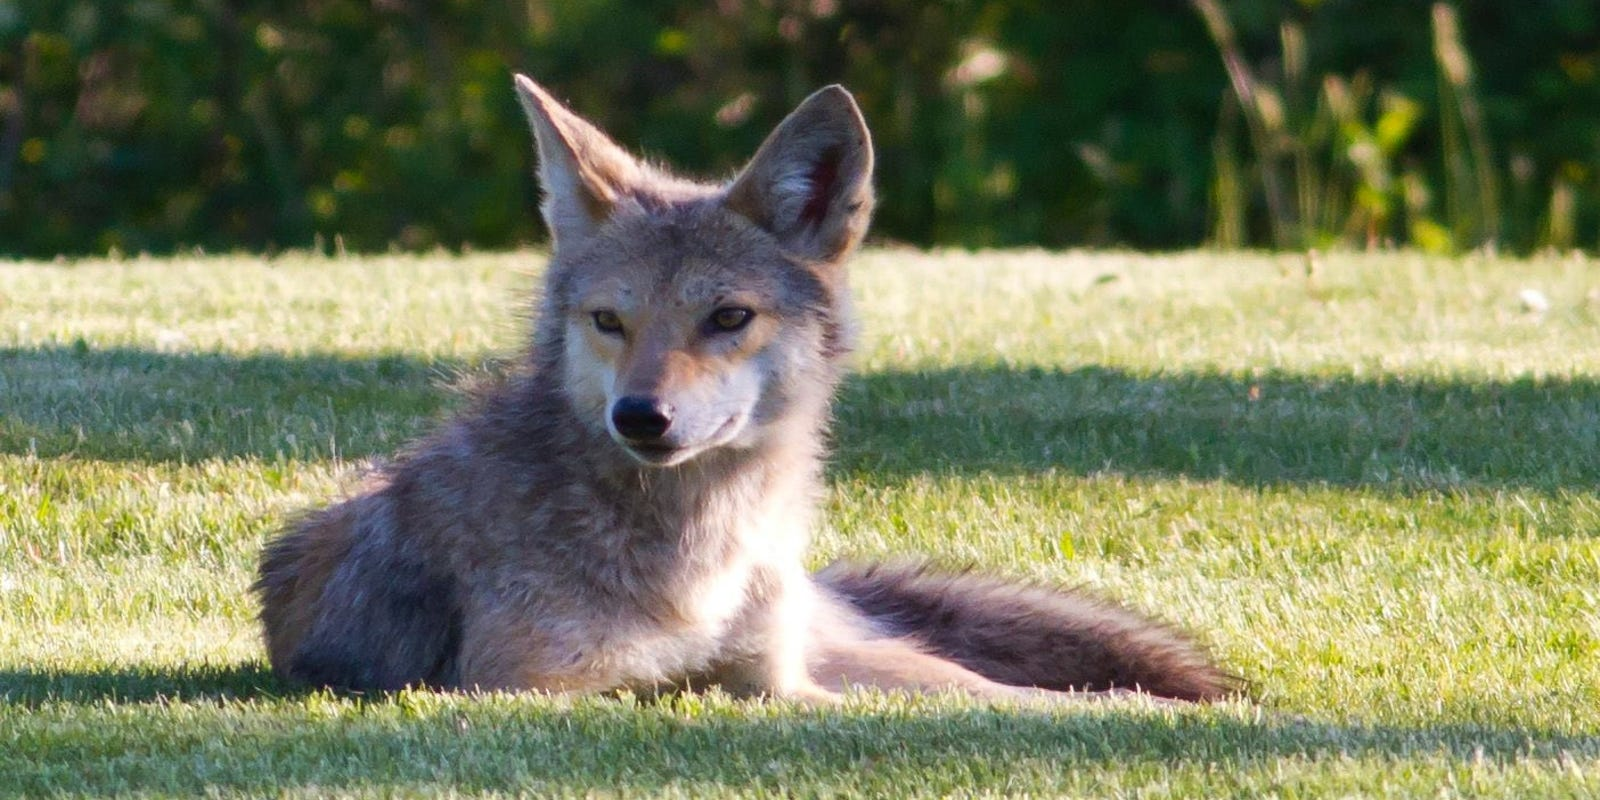 Coyotes in suburbs worry residents but pose little threat